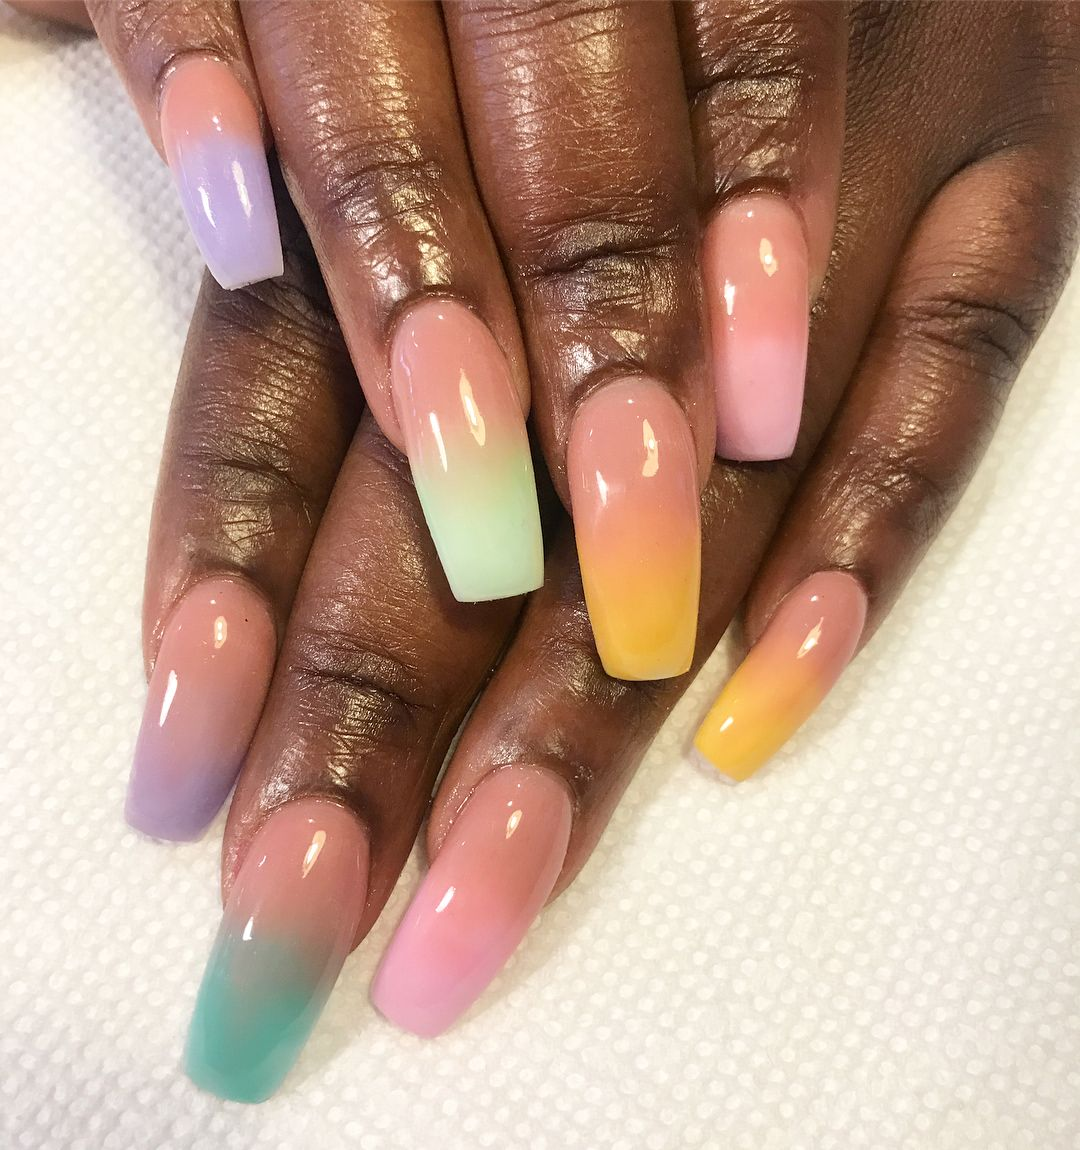 Long Acrylics With Pink And Pastel Ombre Blackgirlnails Ombre Ombre Acrylic Nails Pink Ombre Nails Girls Nails